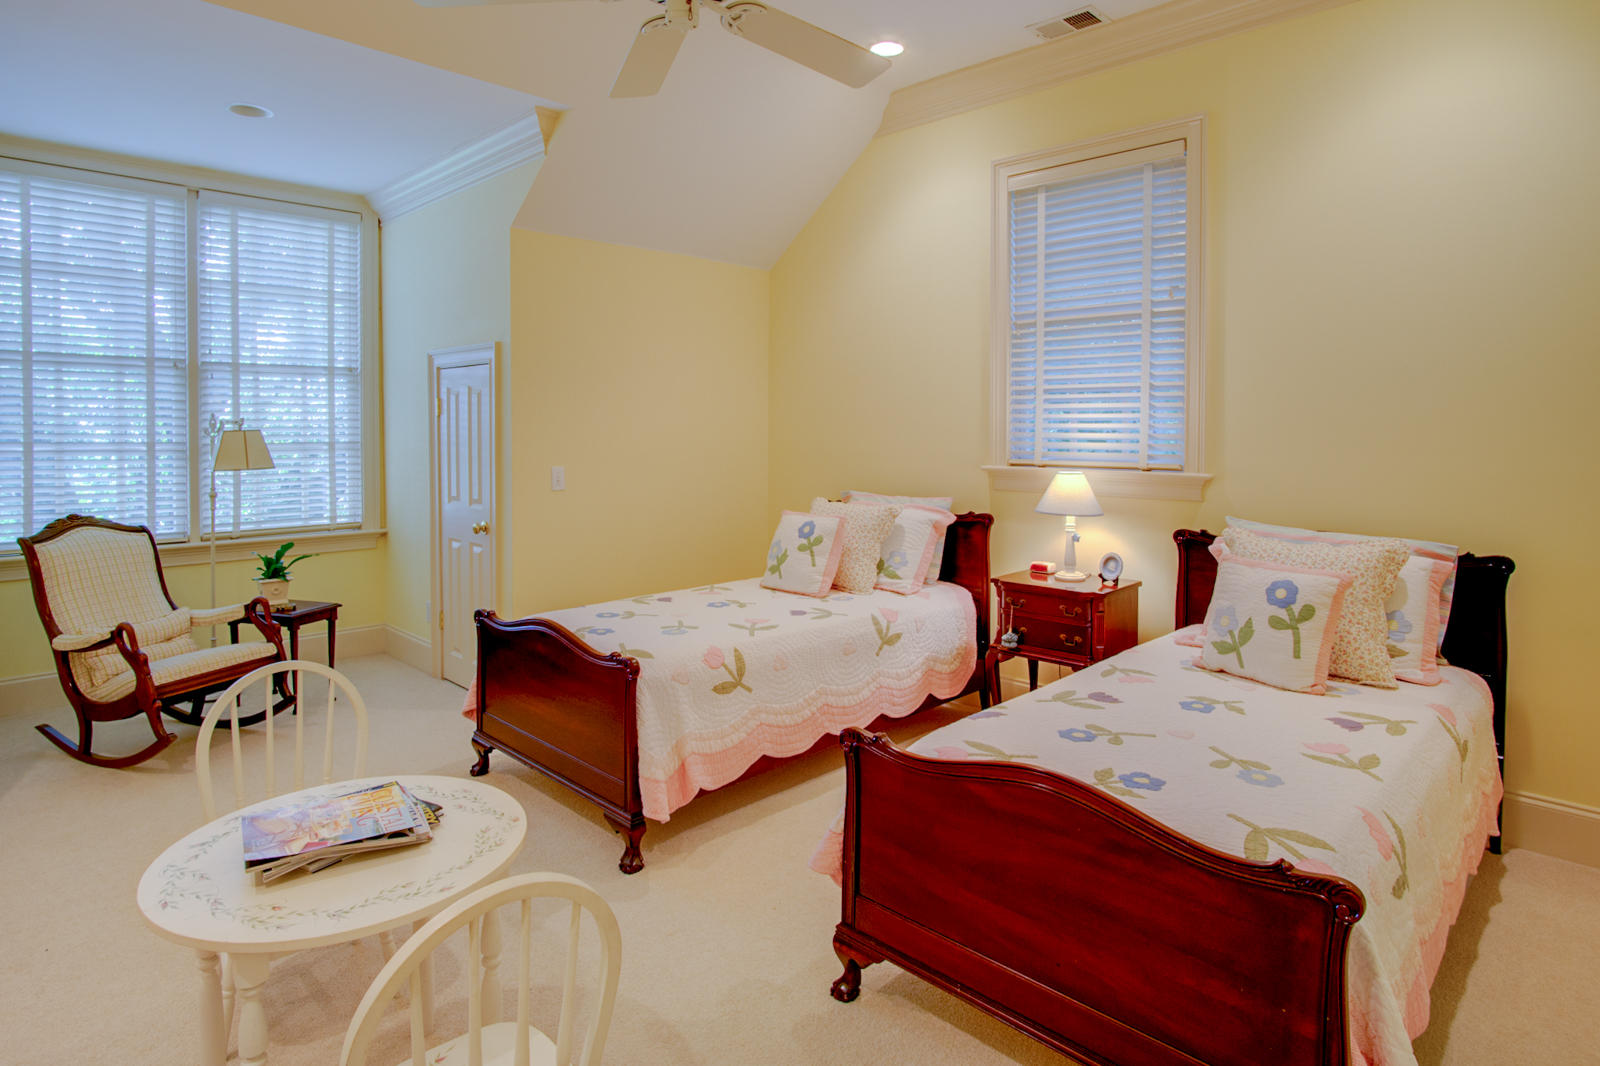 Bull Point Plantation Homes For Sale - 123 Bull Point, Seabrook, SC - 11